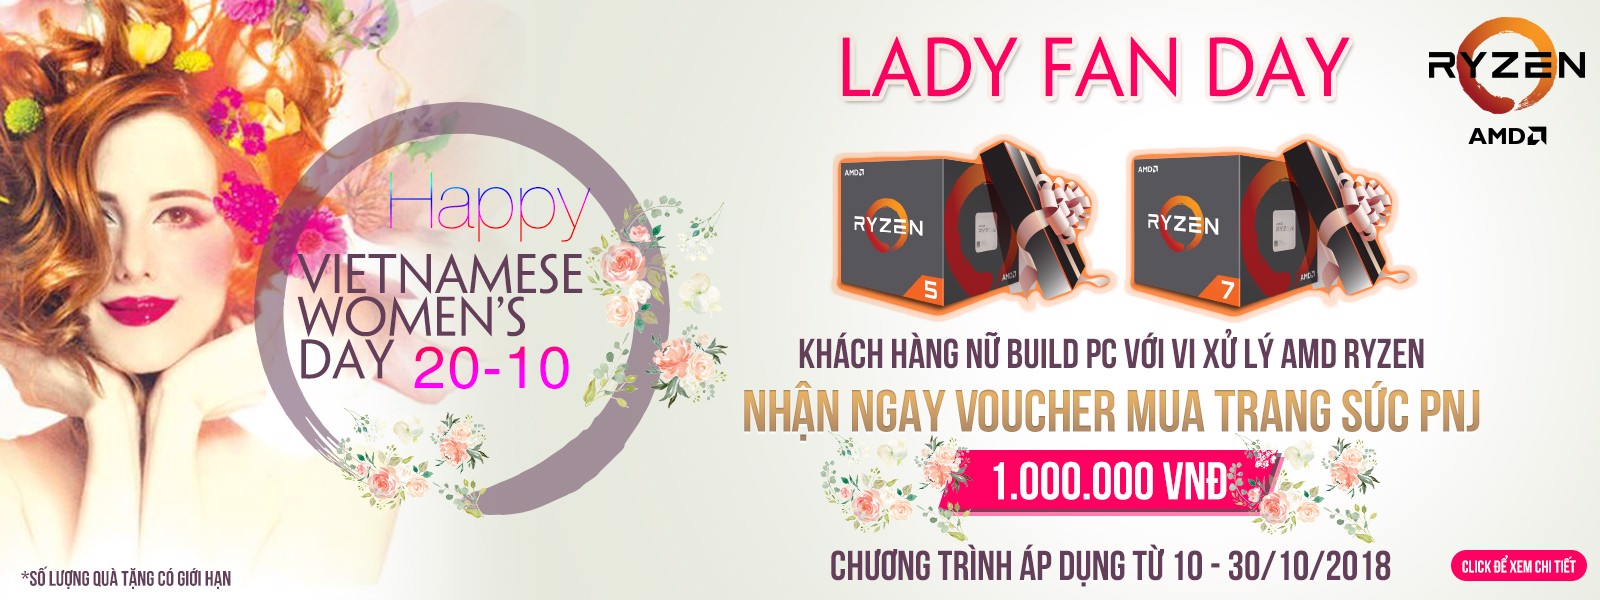 LADY FAN DAY - AMD